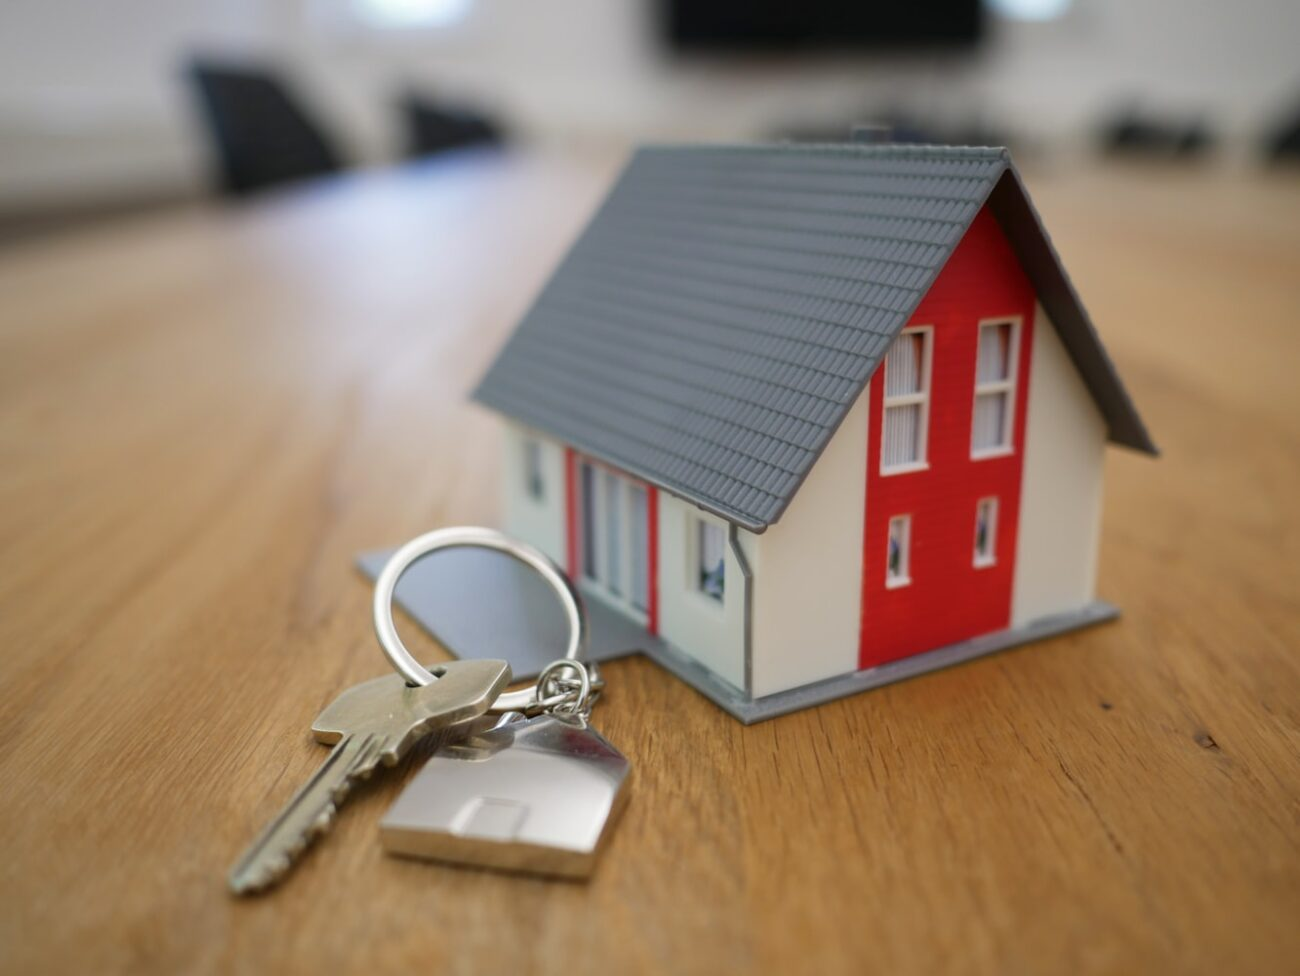 Moving to a new home can be difficult. That said, there are tons of benefits to moving, and here's a helpful list of them.